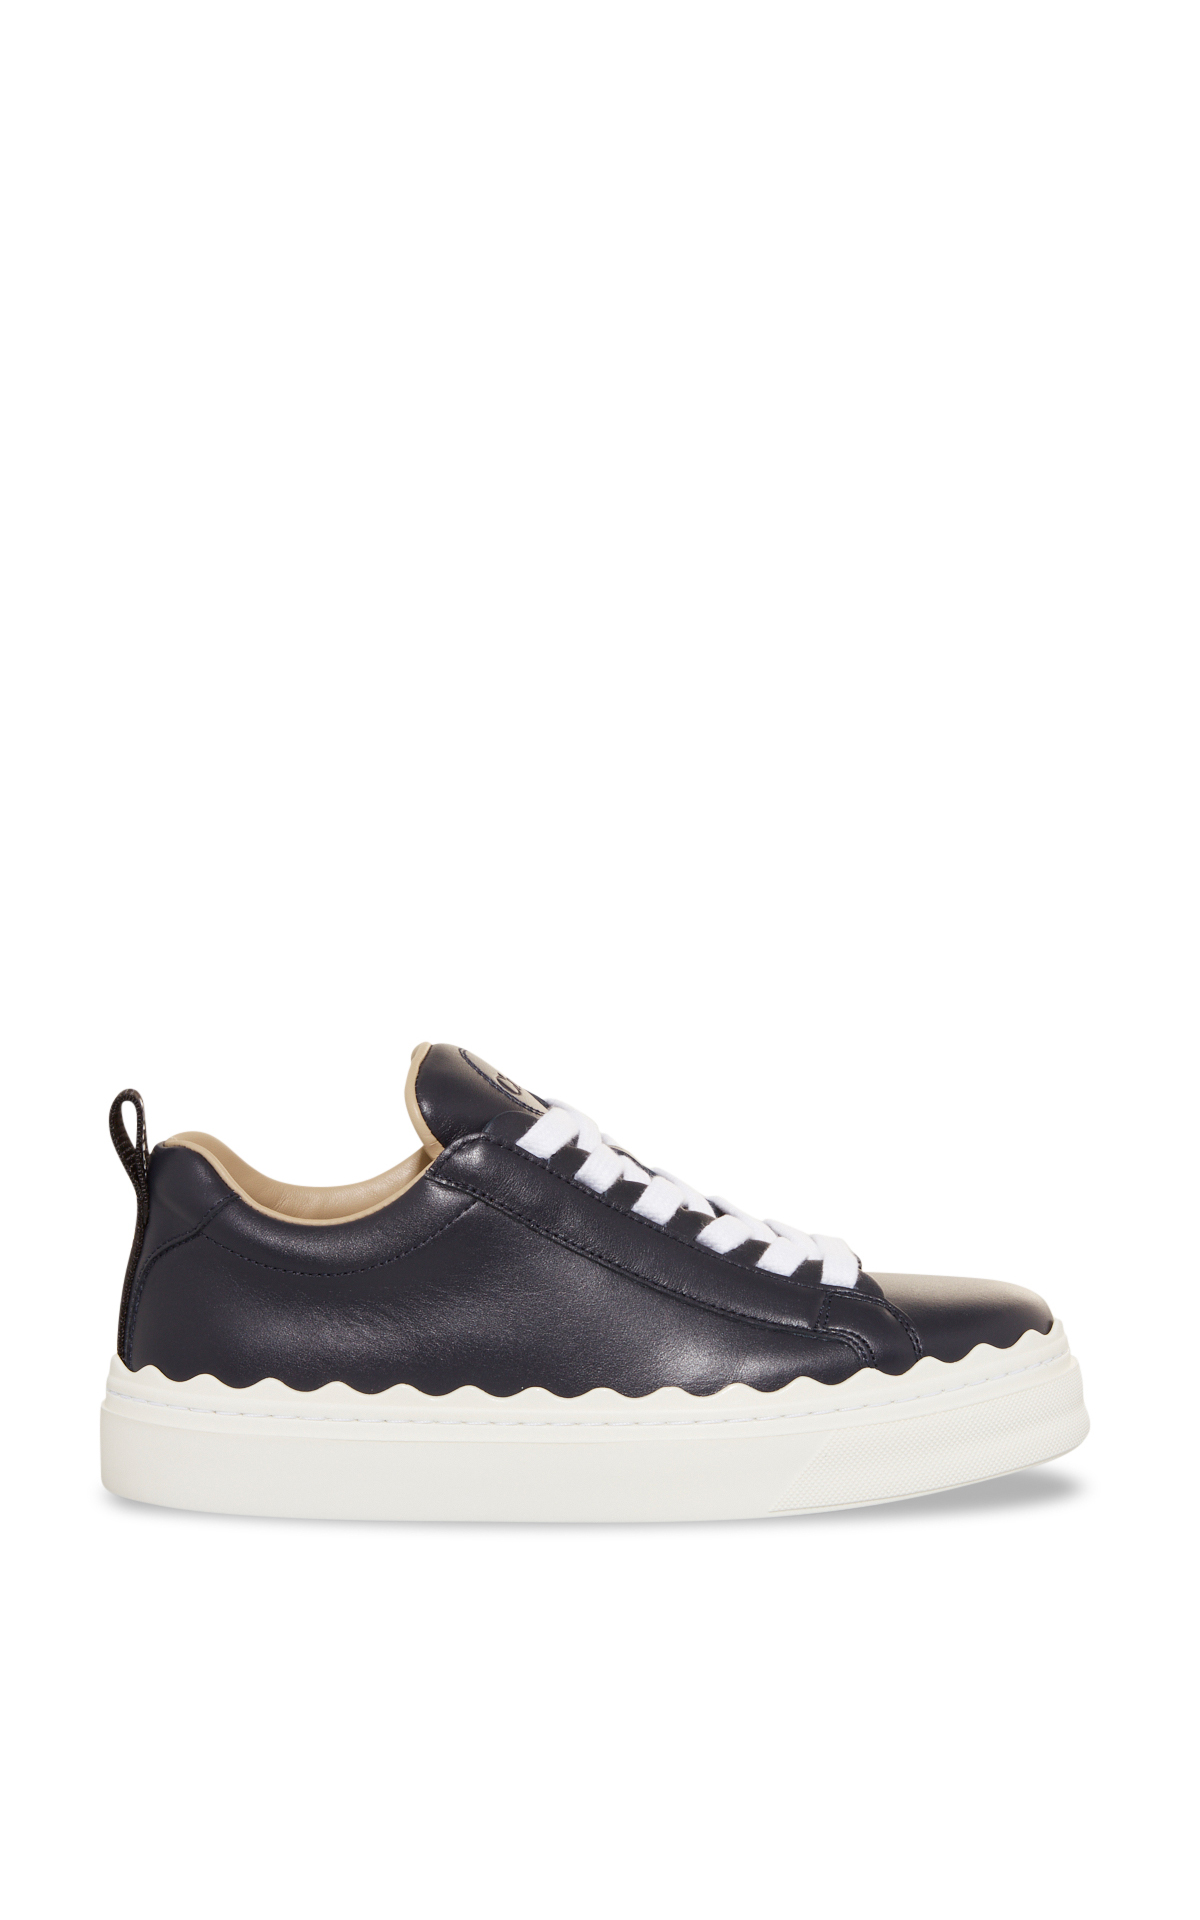 La Vallée Village Chloé Black sneakers